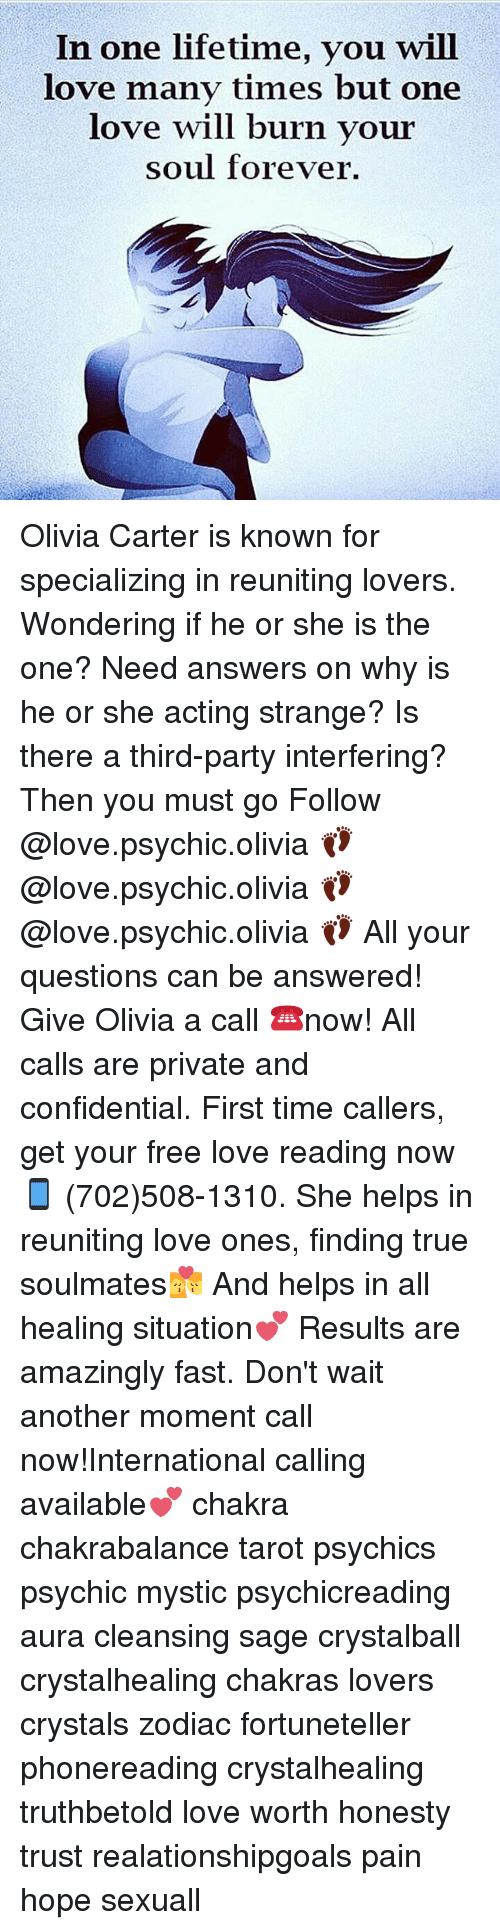 Love, Memes, and Party: In one lifetime, you will  love many times but one  love will burn vour  soul forever. Olivia Carter is known for specializing in reuniting lovers. Wondering if he or she is the one? Need answers on why is he or she acting strange? Is there a third-party interfering? Then you must go Follow @love.psychic.olivia 👣 @love.psychic.olivia 👣 @love.psychic.olivia 👣 All your questions can be answered! Give Olivia a call ☎️now! All calls are private and confidential. First time callers, get your free love reading now 📱 (702)508-1310. She helps in reuniting love ones, finding true soulmates💏 And helps in all healing situation💕 Results are amazingly fast. Don't wait another moment call now!International calling available💕 chakra chakrabalance tarot psychics psychic mystic psychicreading aura cleansing sage crystalball crystalhealing chakras lovers crystals zodiac fortuneteller phonereading crystalhealing truthbetold love worth honesty trust realationshipgoals pain hope sexuall